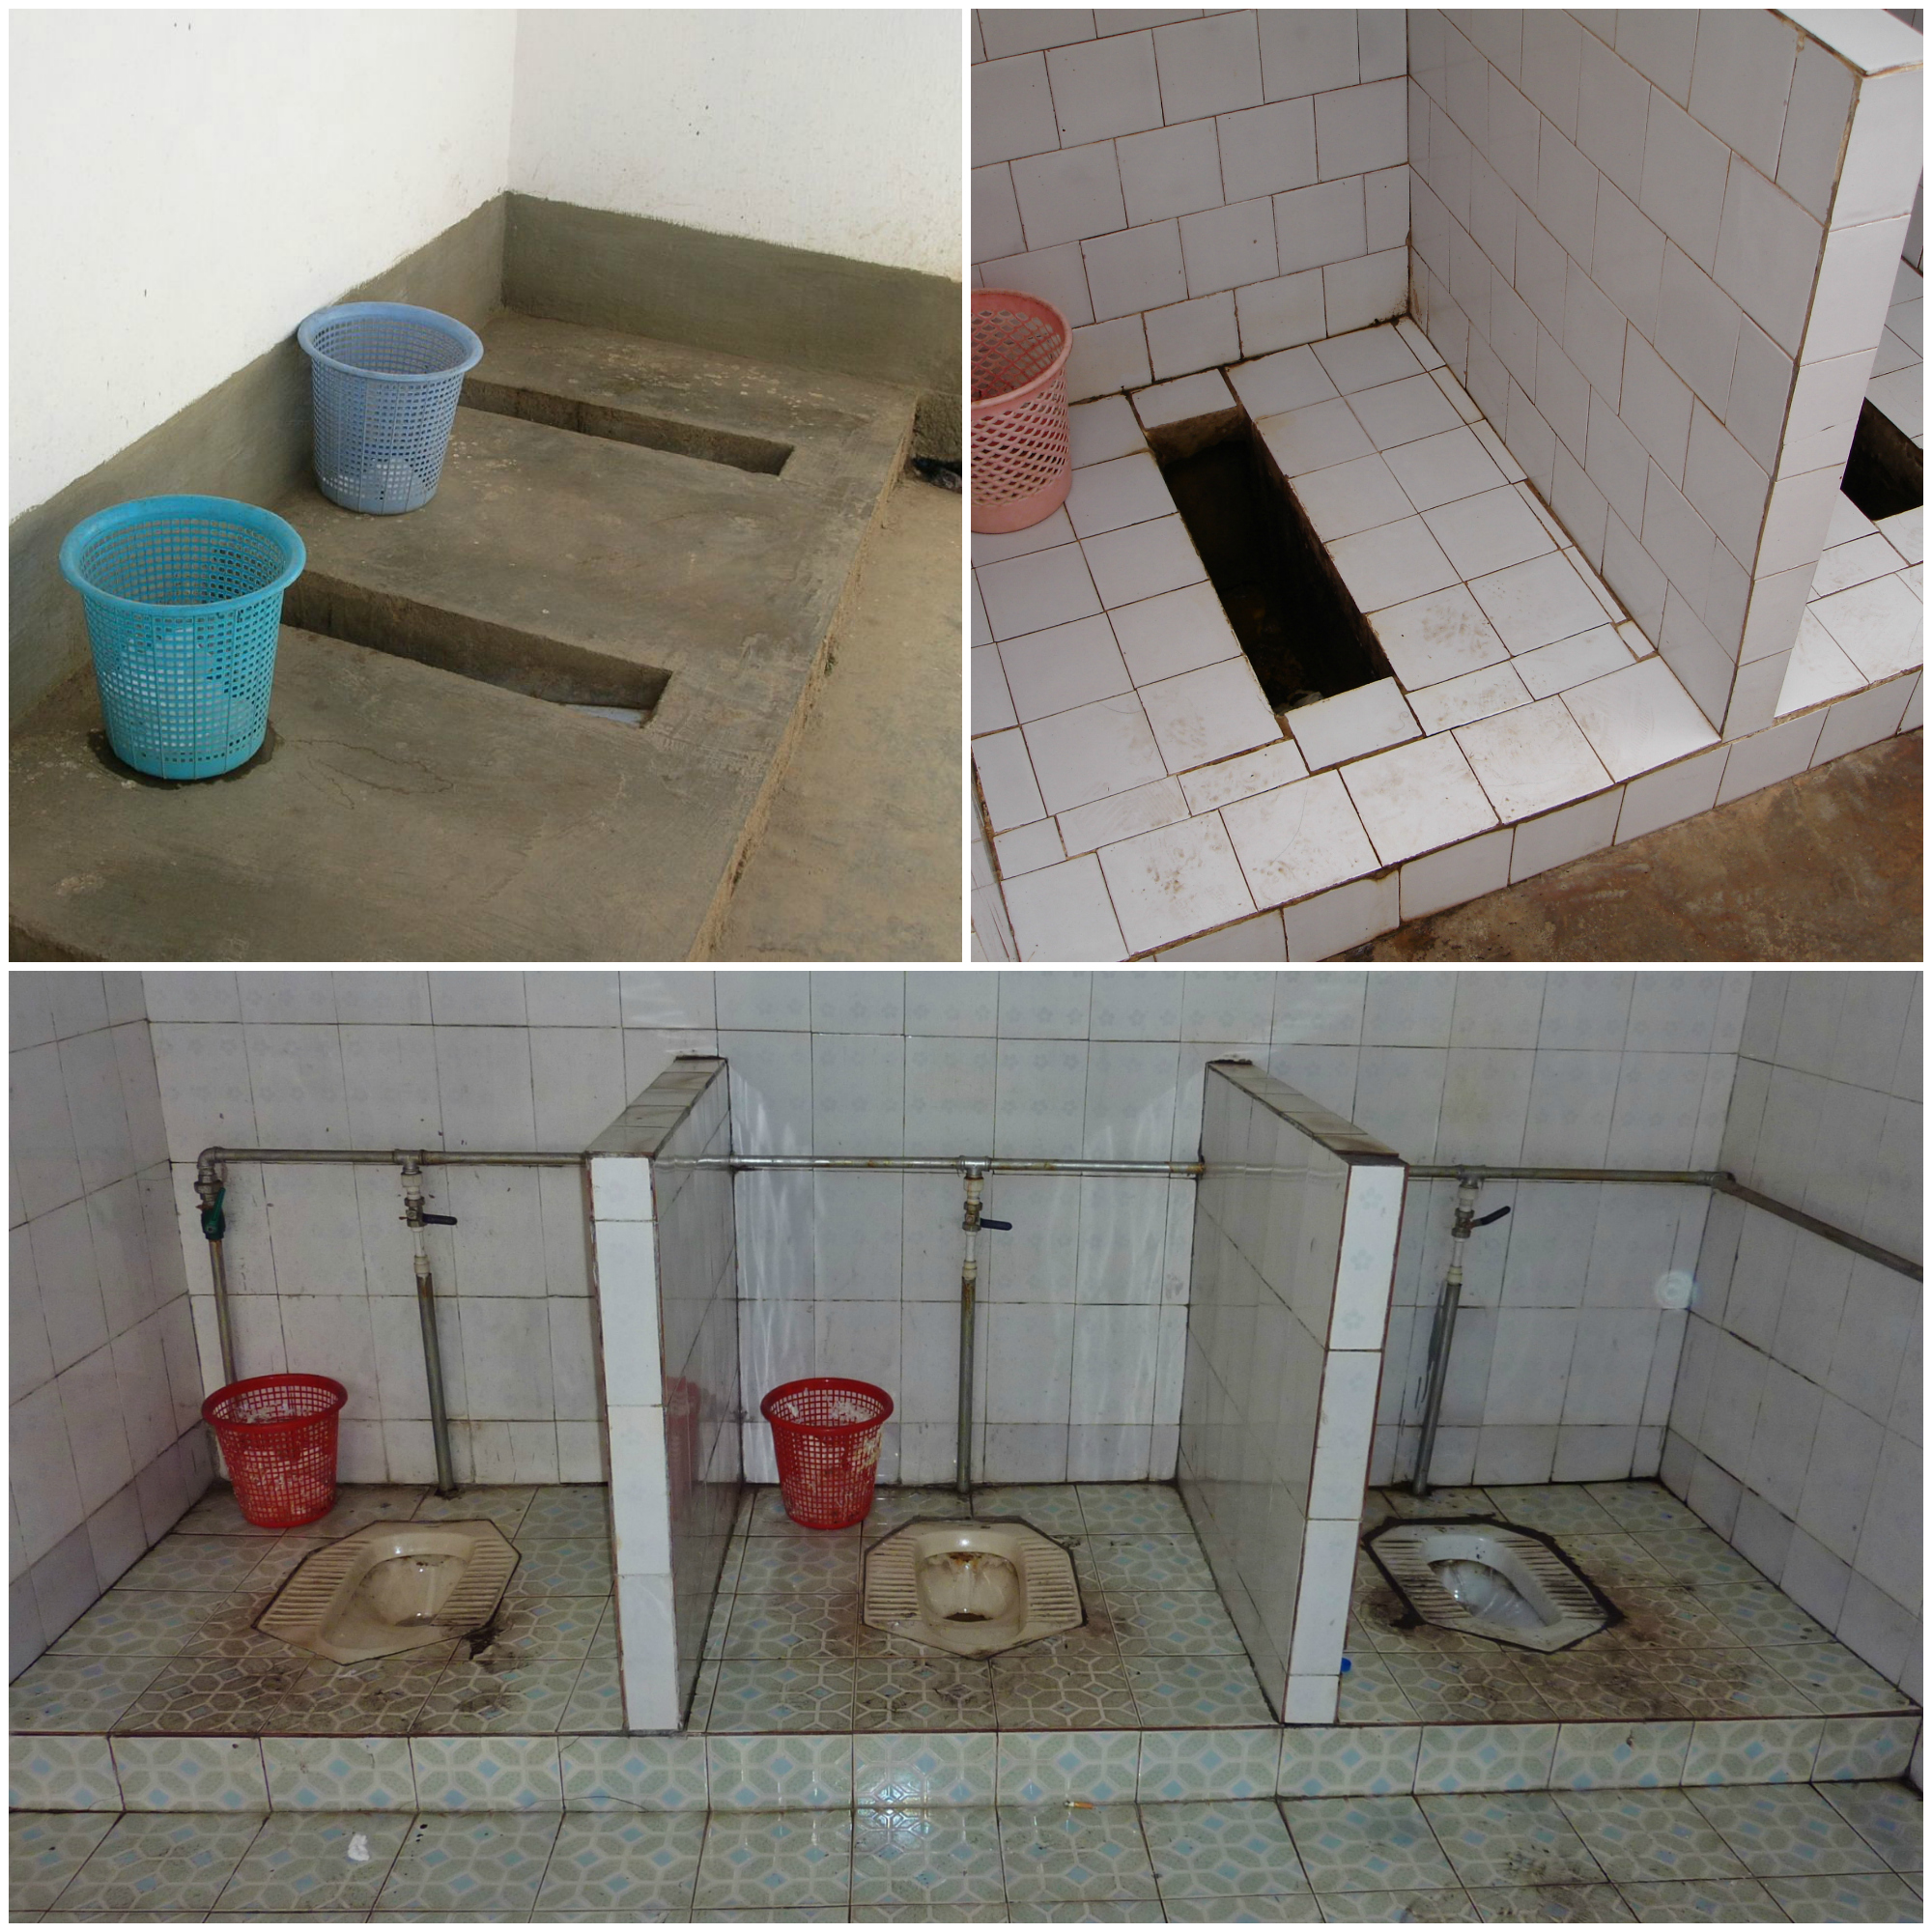 Squatting toilets in China. Dealing with Culture Shock in China   The Culture Map